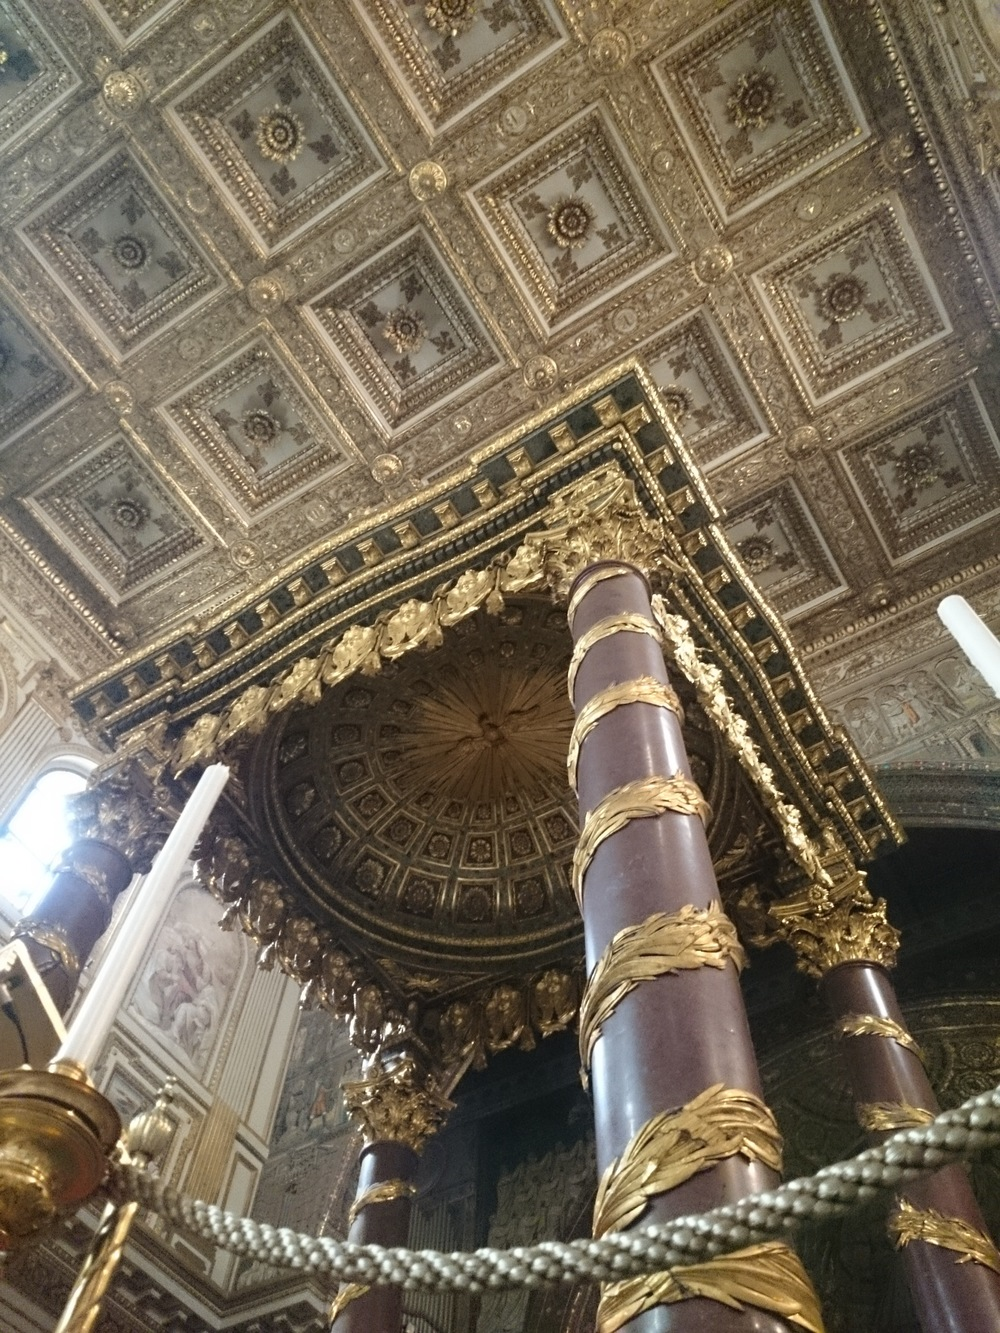 The ceiling and the baldachin of the basilica of St Mary Major in Rome. The gold comes from the Inca Empire